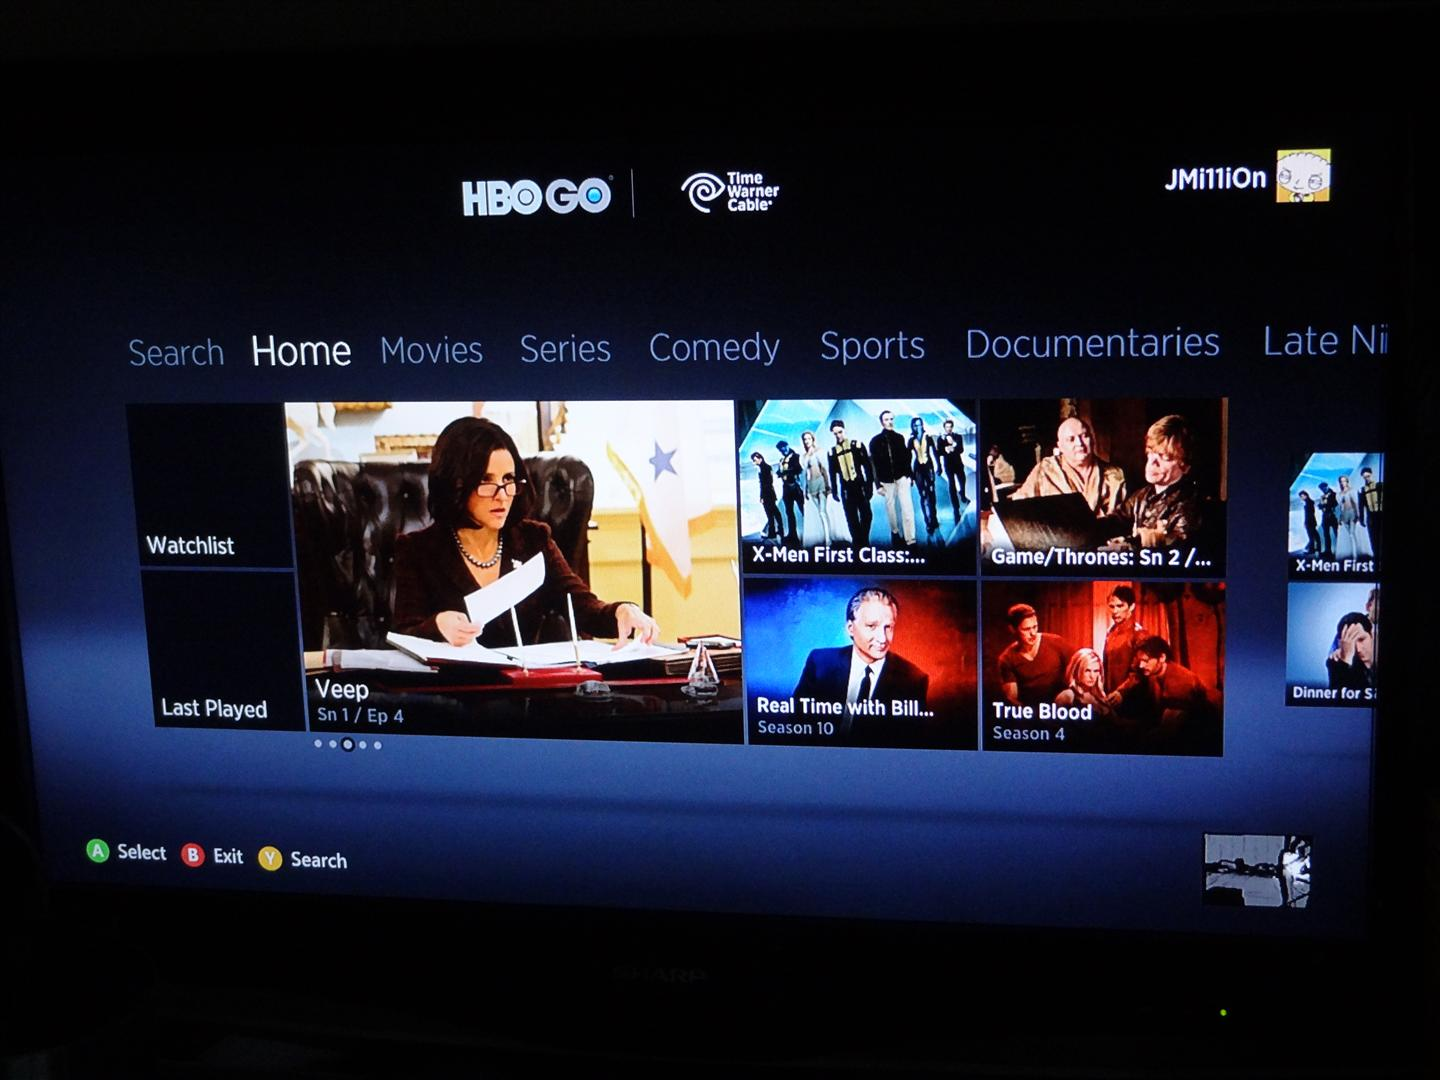 Quick Guide to Sign-In and Sign-Out of the HBO Go Service from IOS